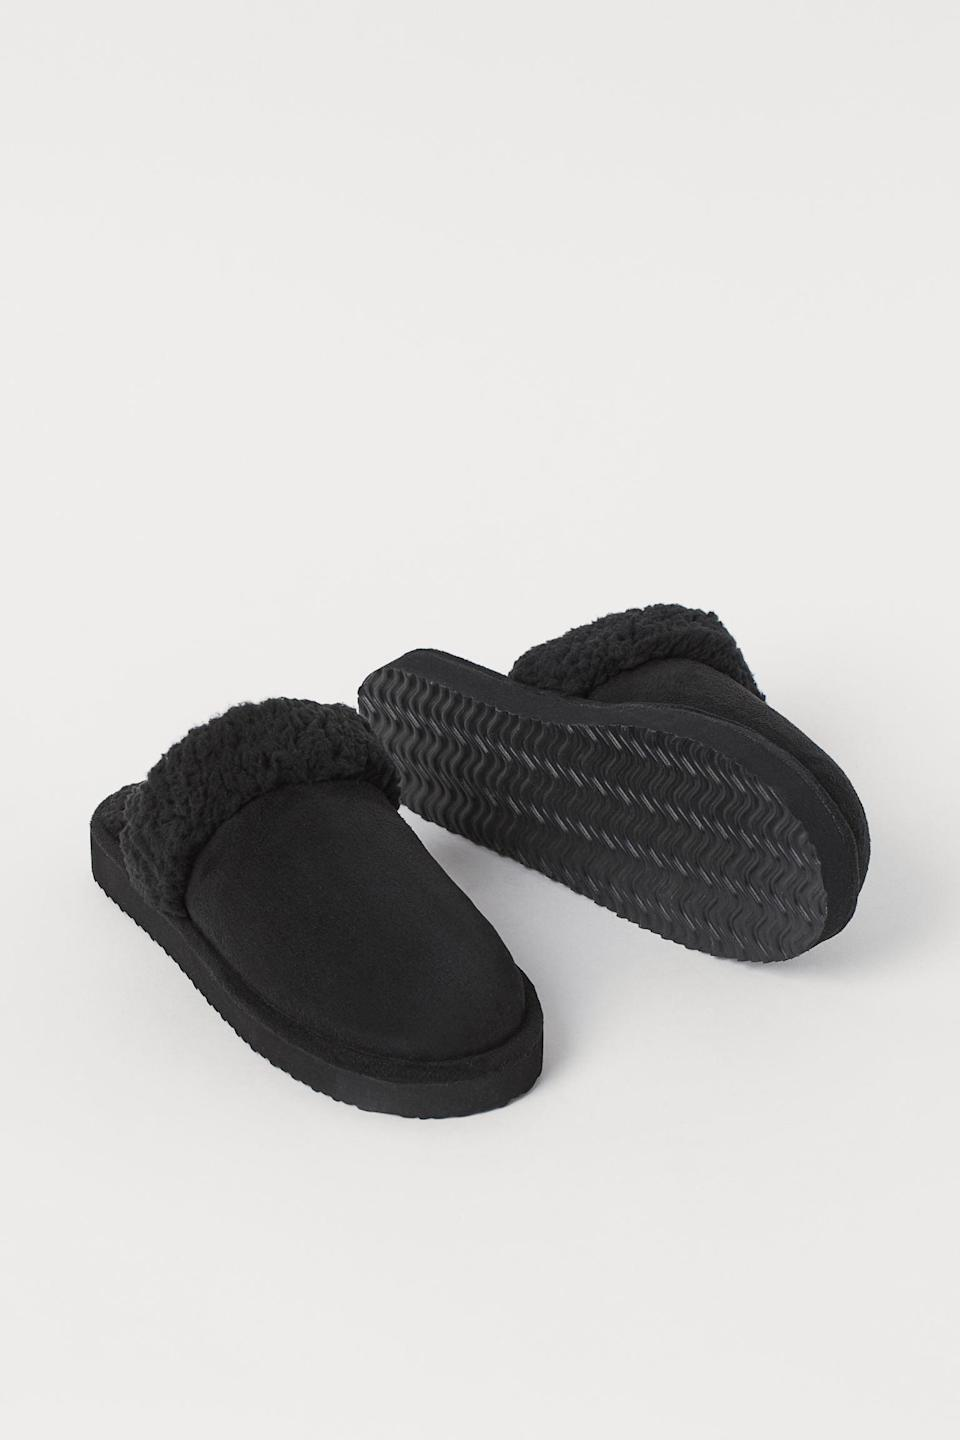 <p>These <span>Faux Fur-Lined Slippers</span> ($13) feature a comfortable and sturdy sole that ensures you feel good when walking in them.</p>